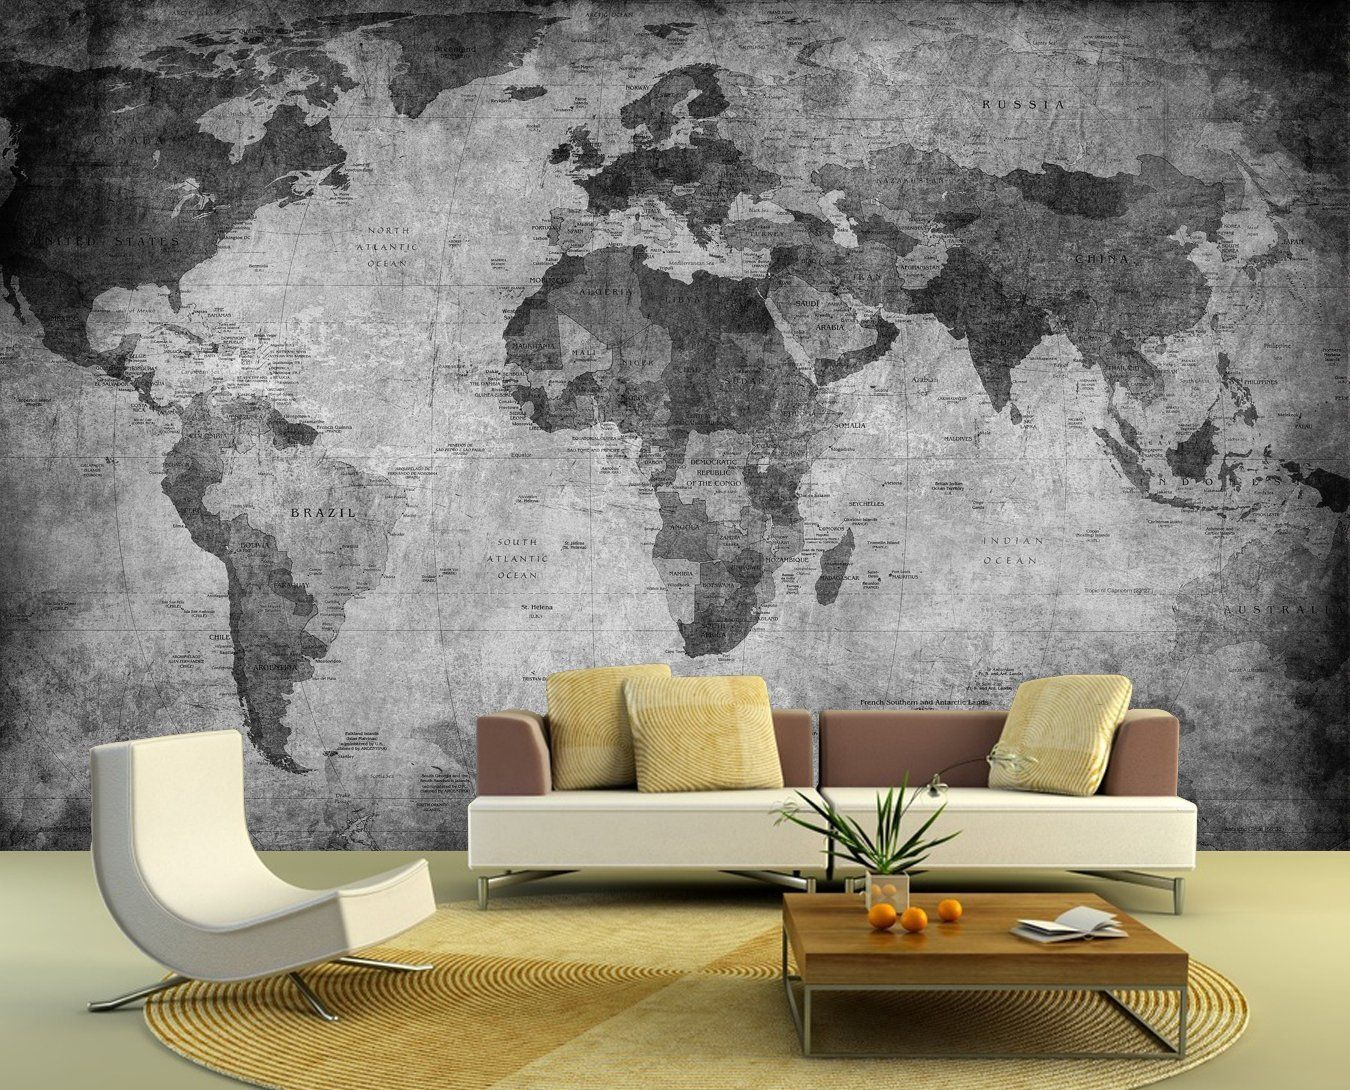 World Map For Sale Amazon. Amazon com Bilderdepot24 self adhesive Photo Wallpaper  Wall Mural World Map